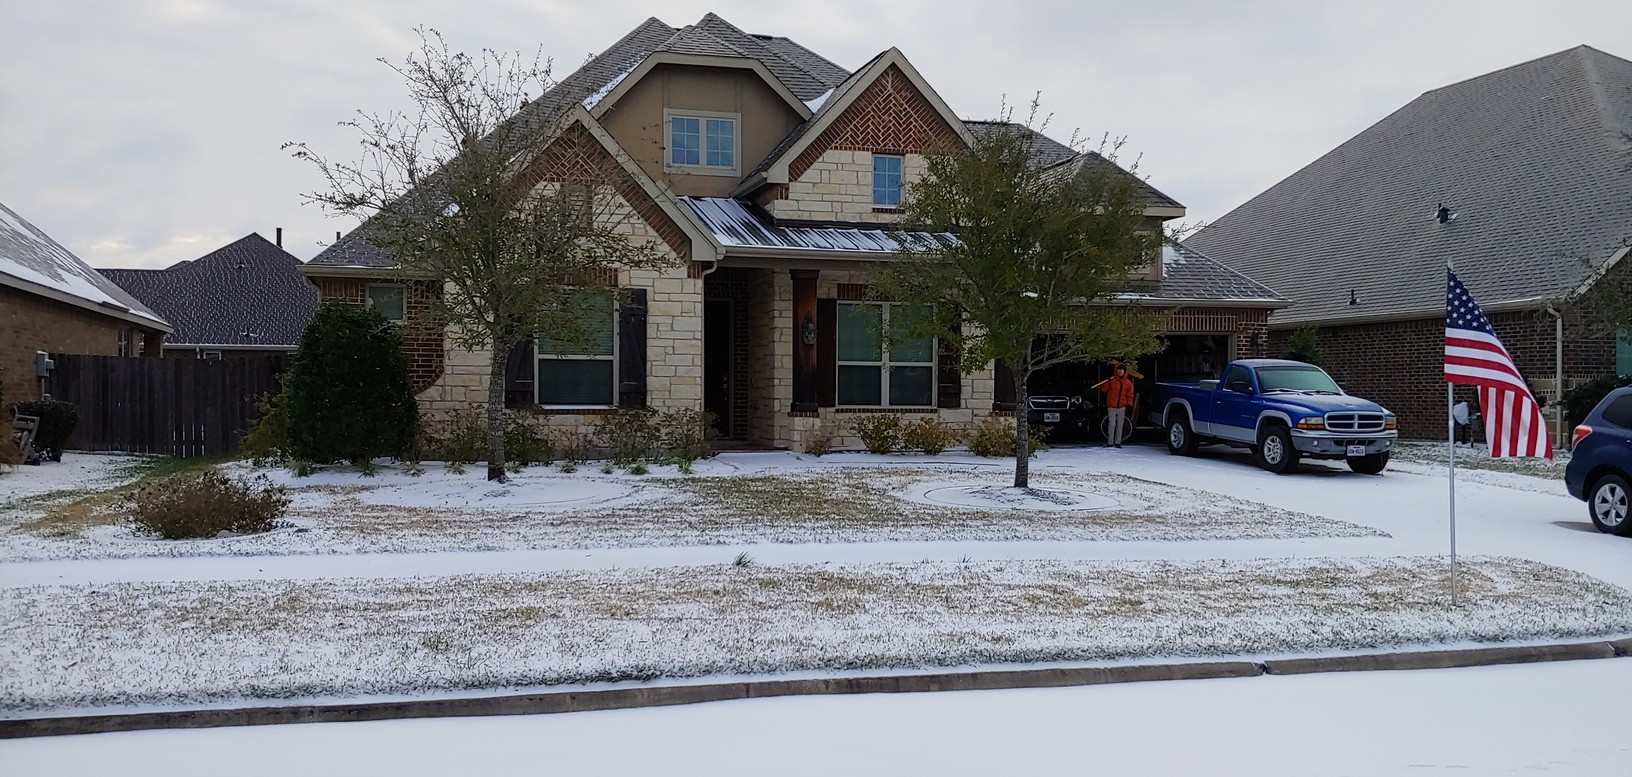 Our house with snow on the ground and Wilson in the garage